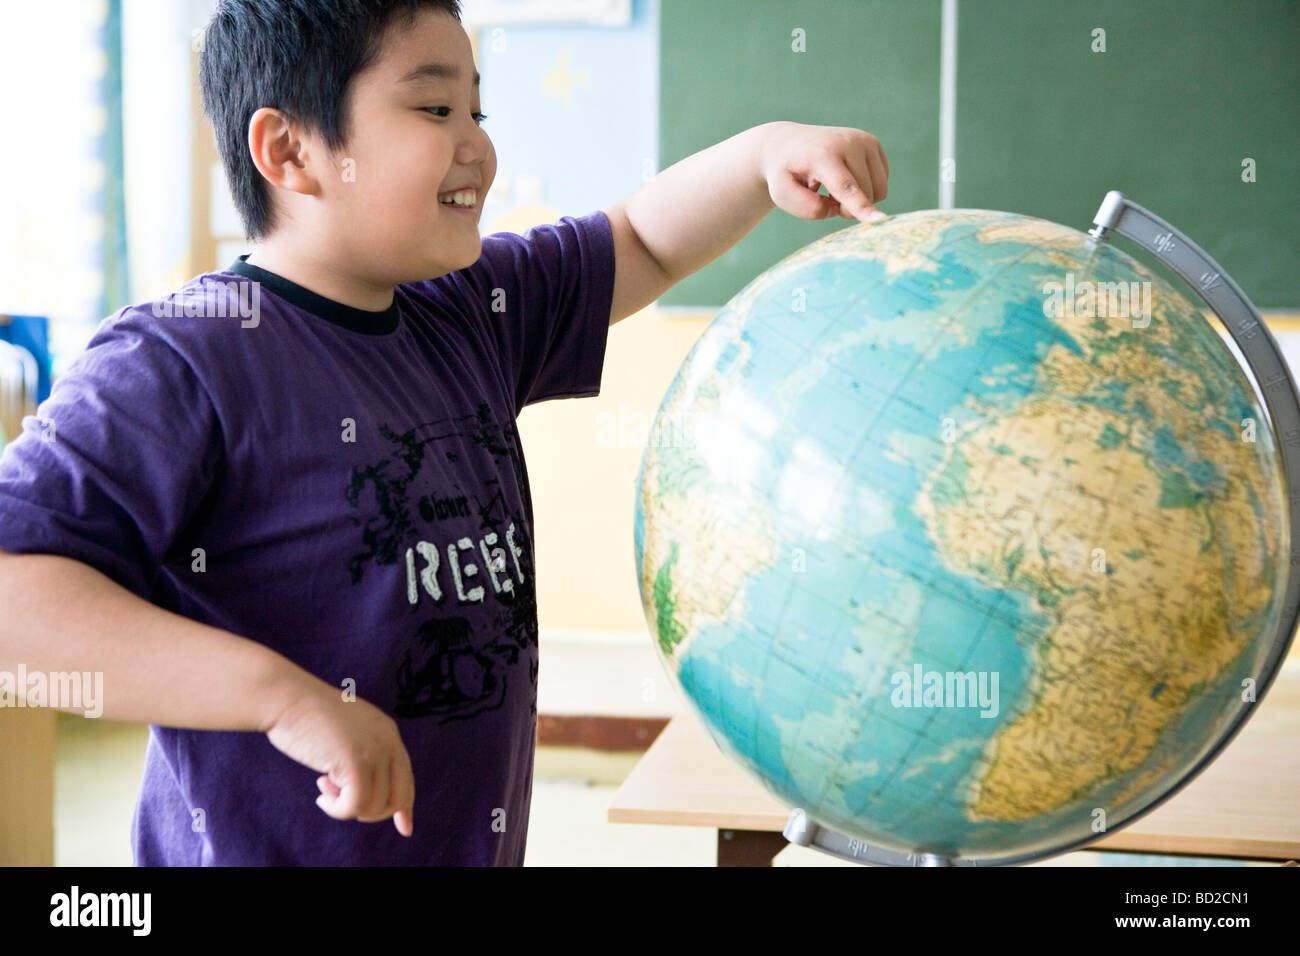 Boy looking at globe en classe Photo Stock